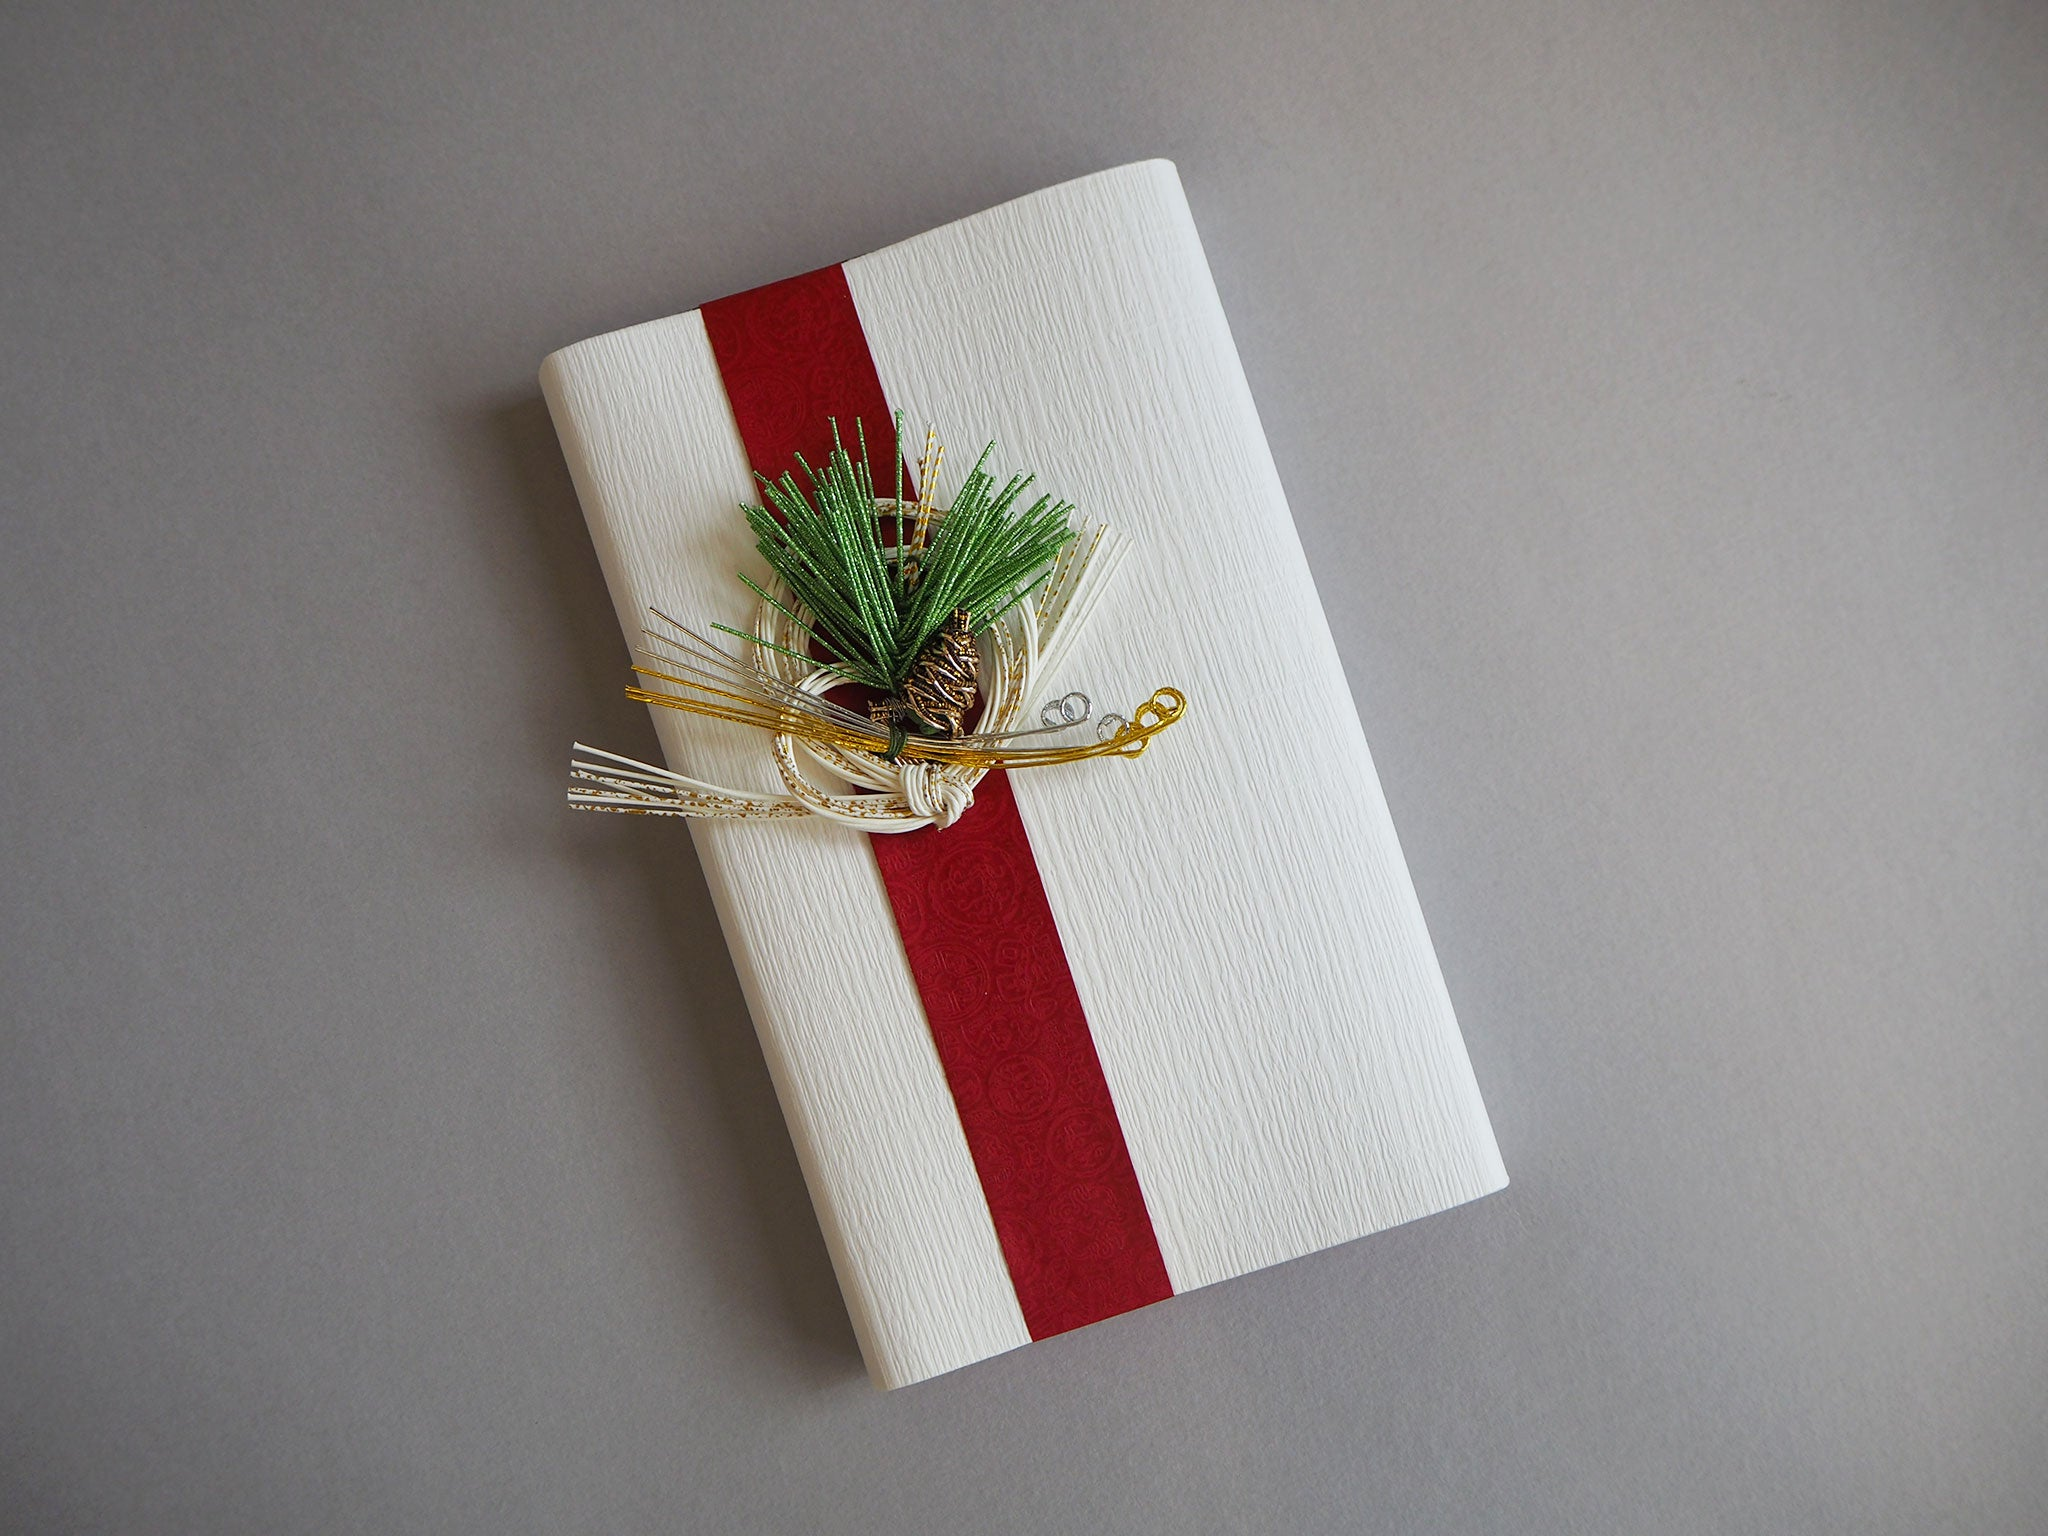 Traditional Japanese Gift Wrapping, envelope